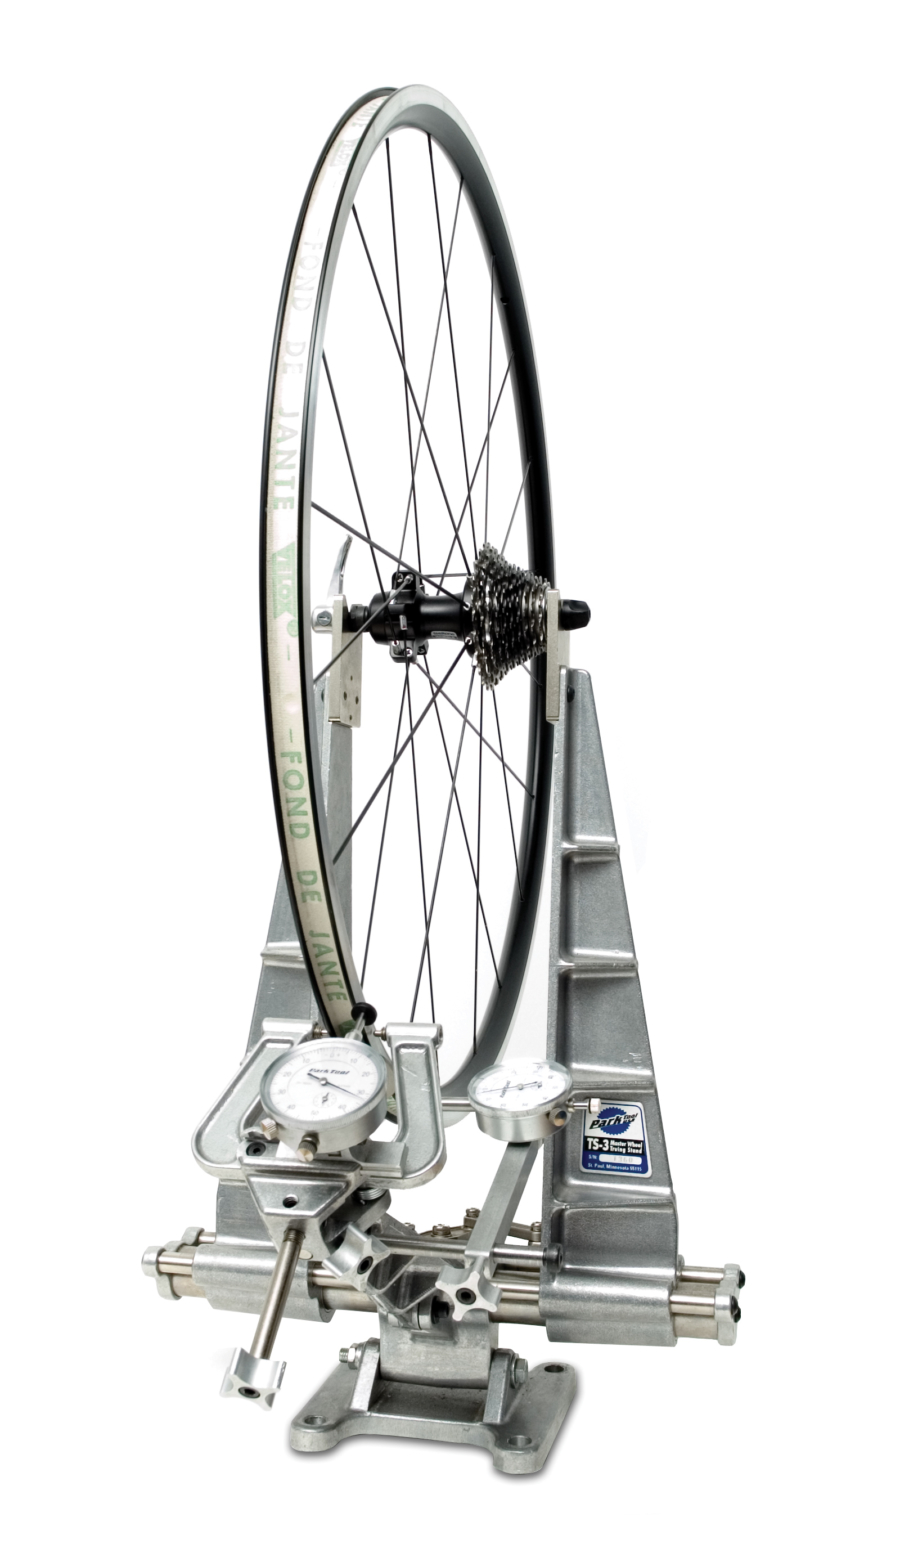 The Park Tool TS-3 Master Truing Stand holding wheel, enlarged